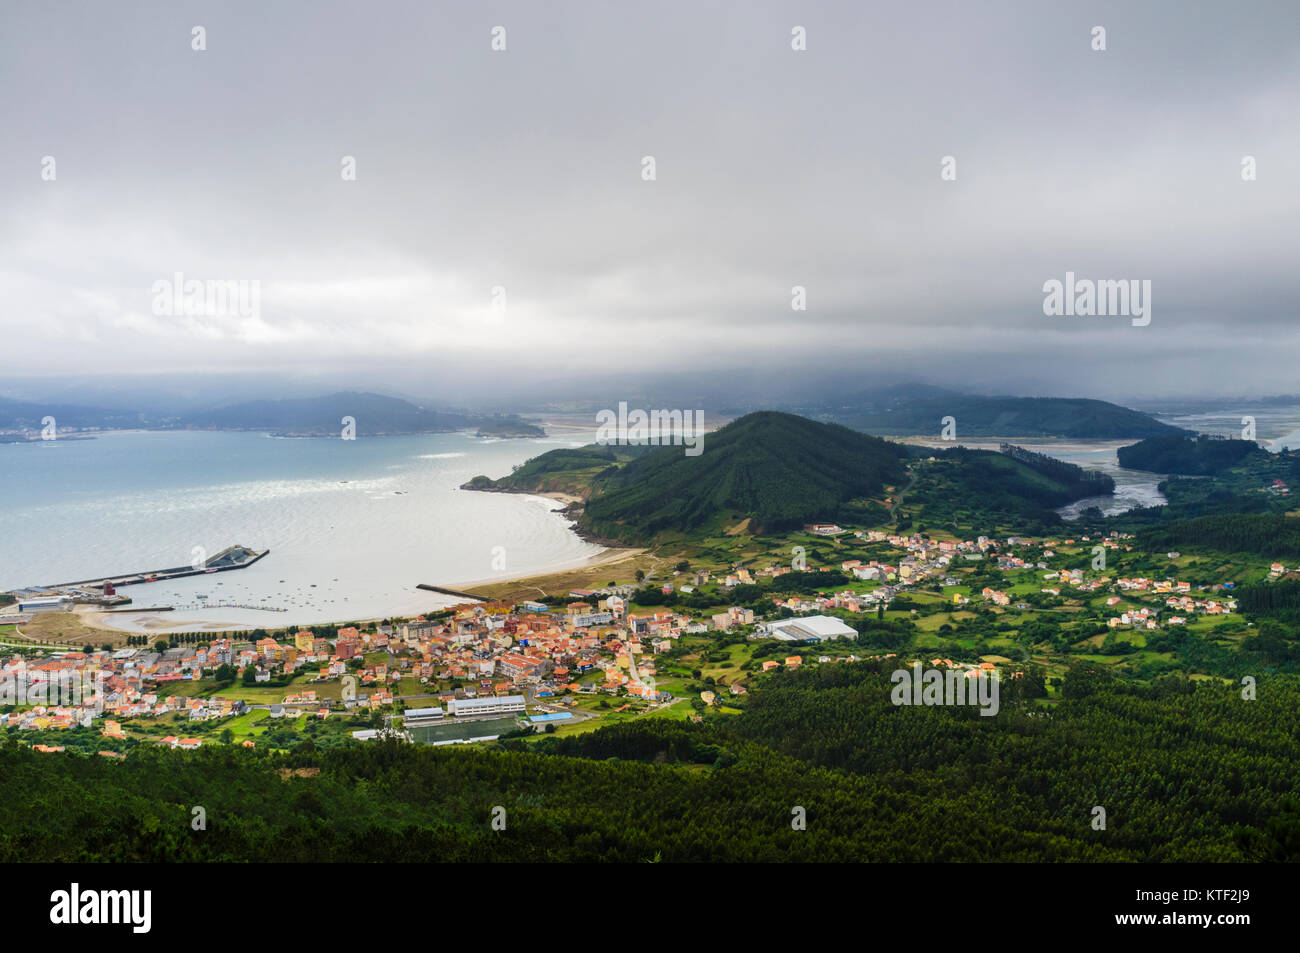 Overview of Cariño village and the estuary Ría de Ortigueira y Ladrido. Ortigueira village in background. - Stock Image